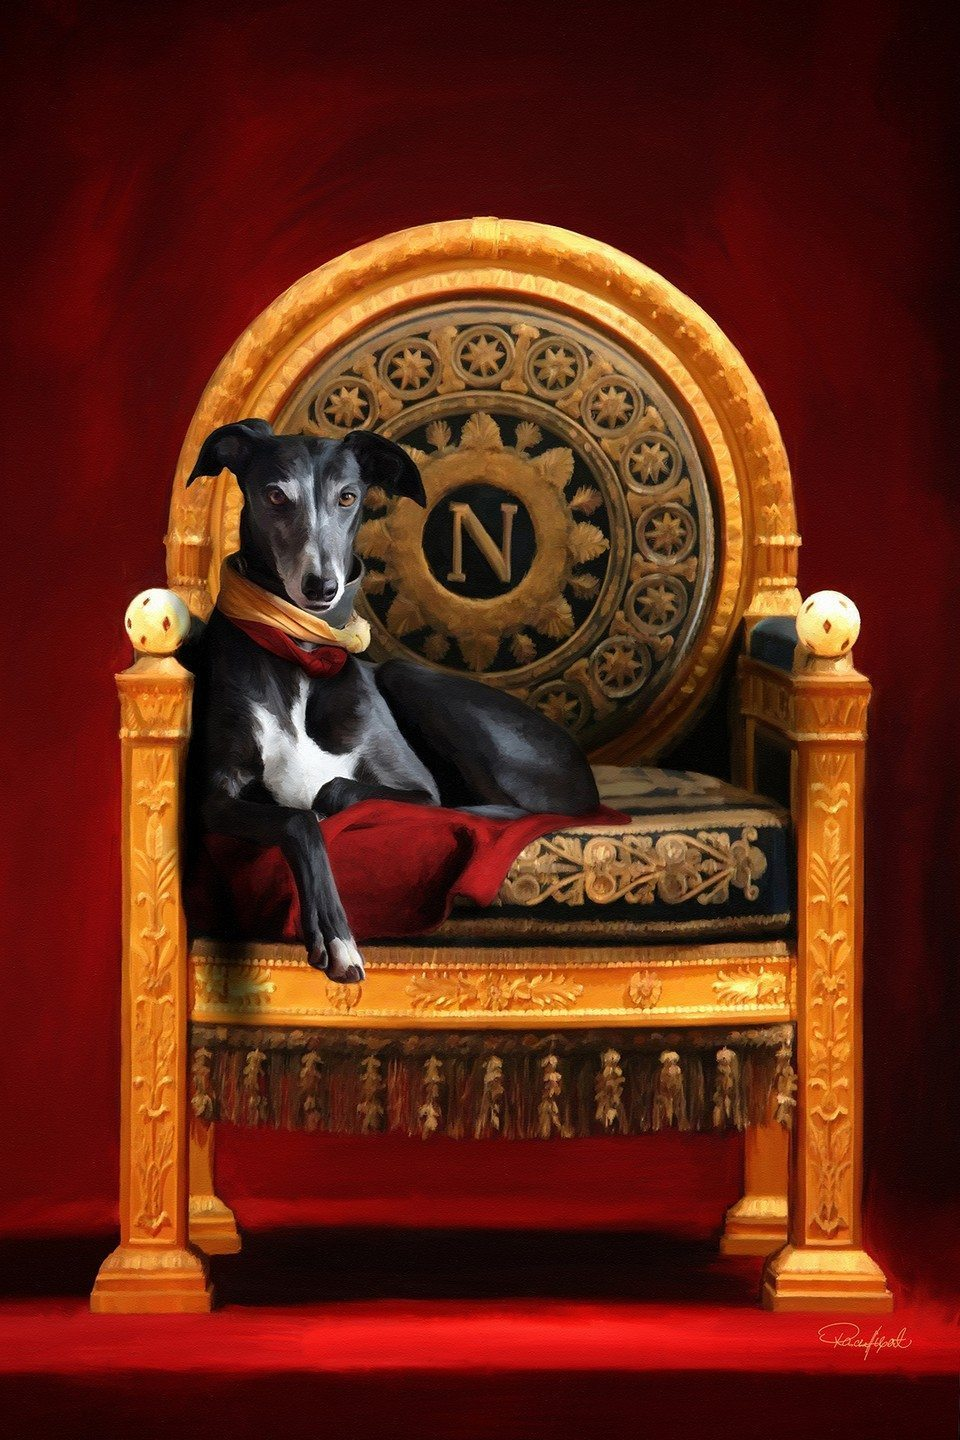 The Malemuck On Napoleon's Throne artrage art by Stephen Rasche-Hilpert